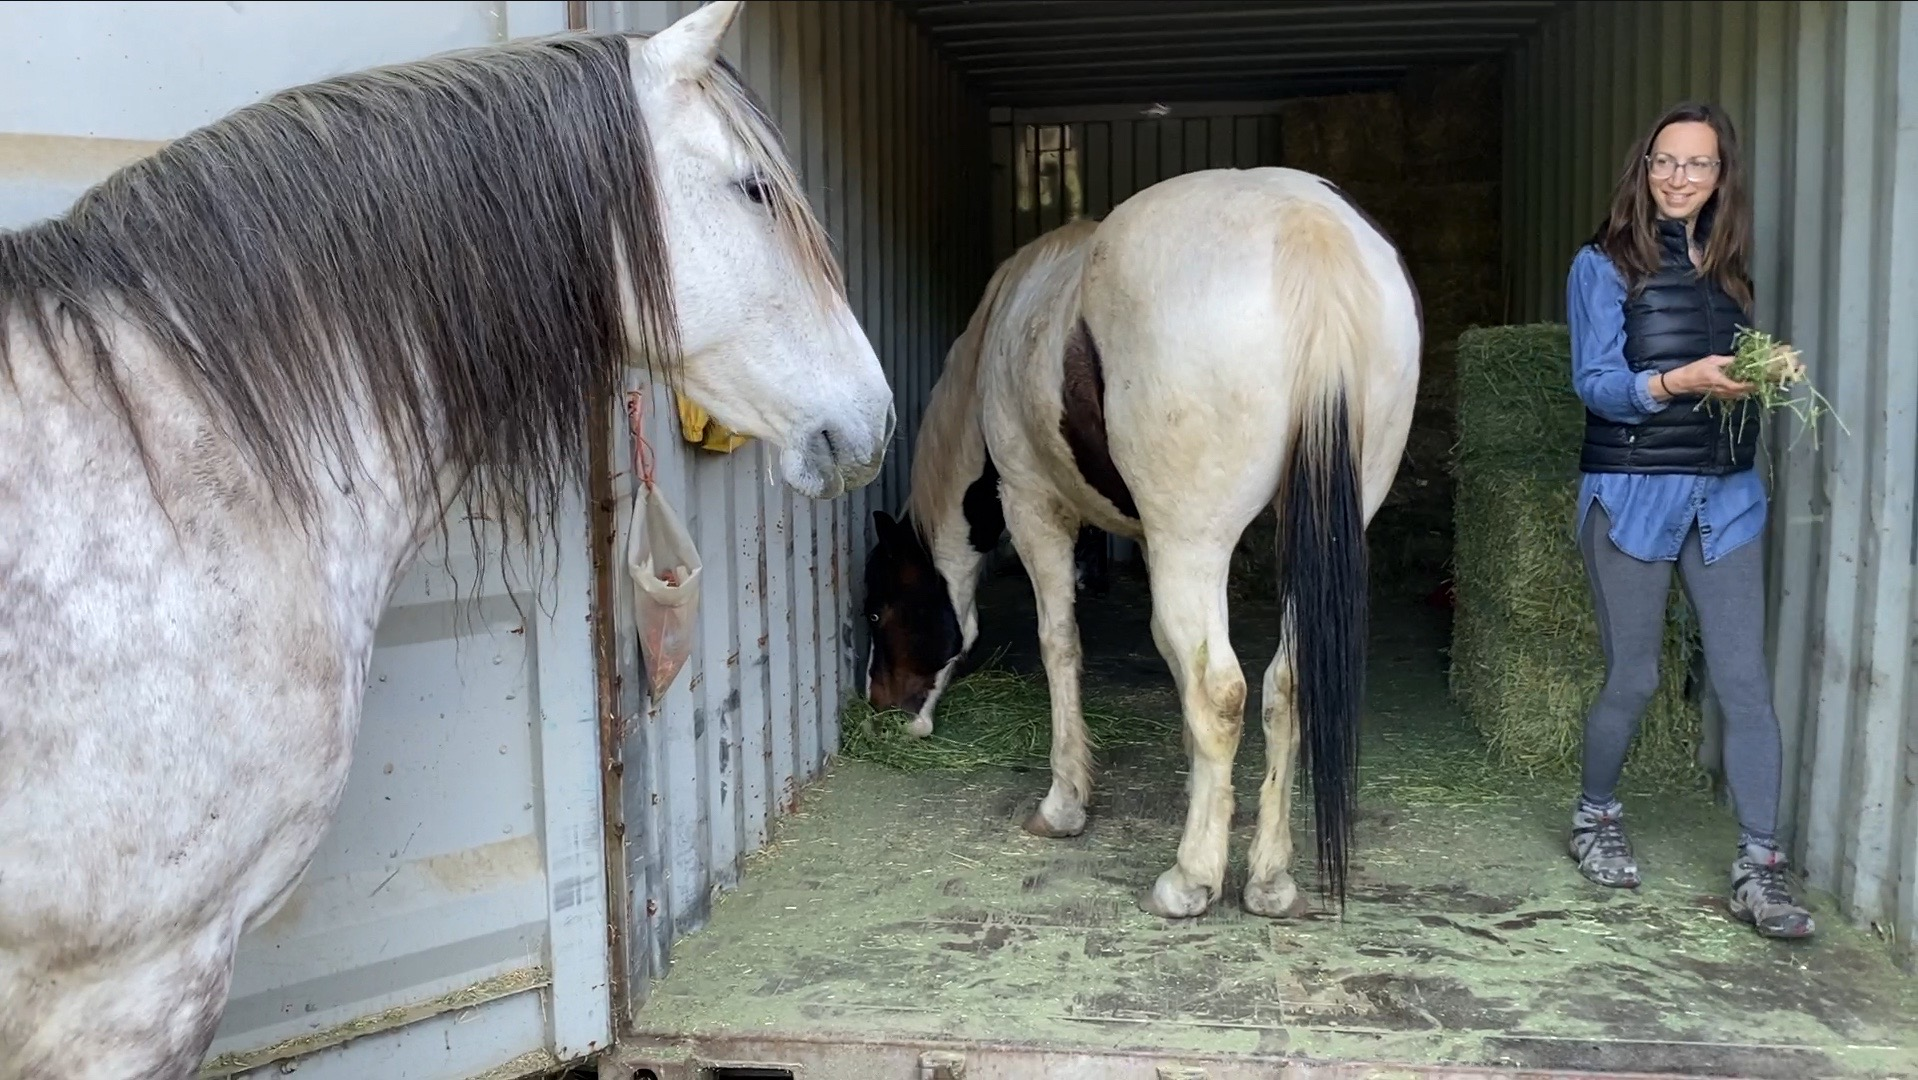 Seacans, Trailers & Horseplay